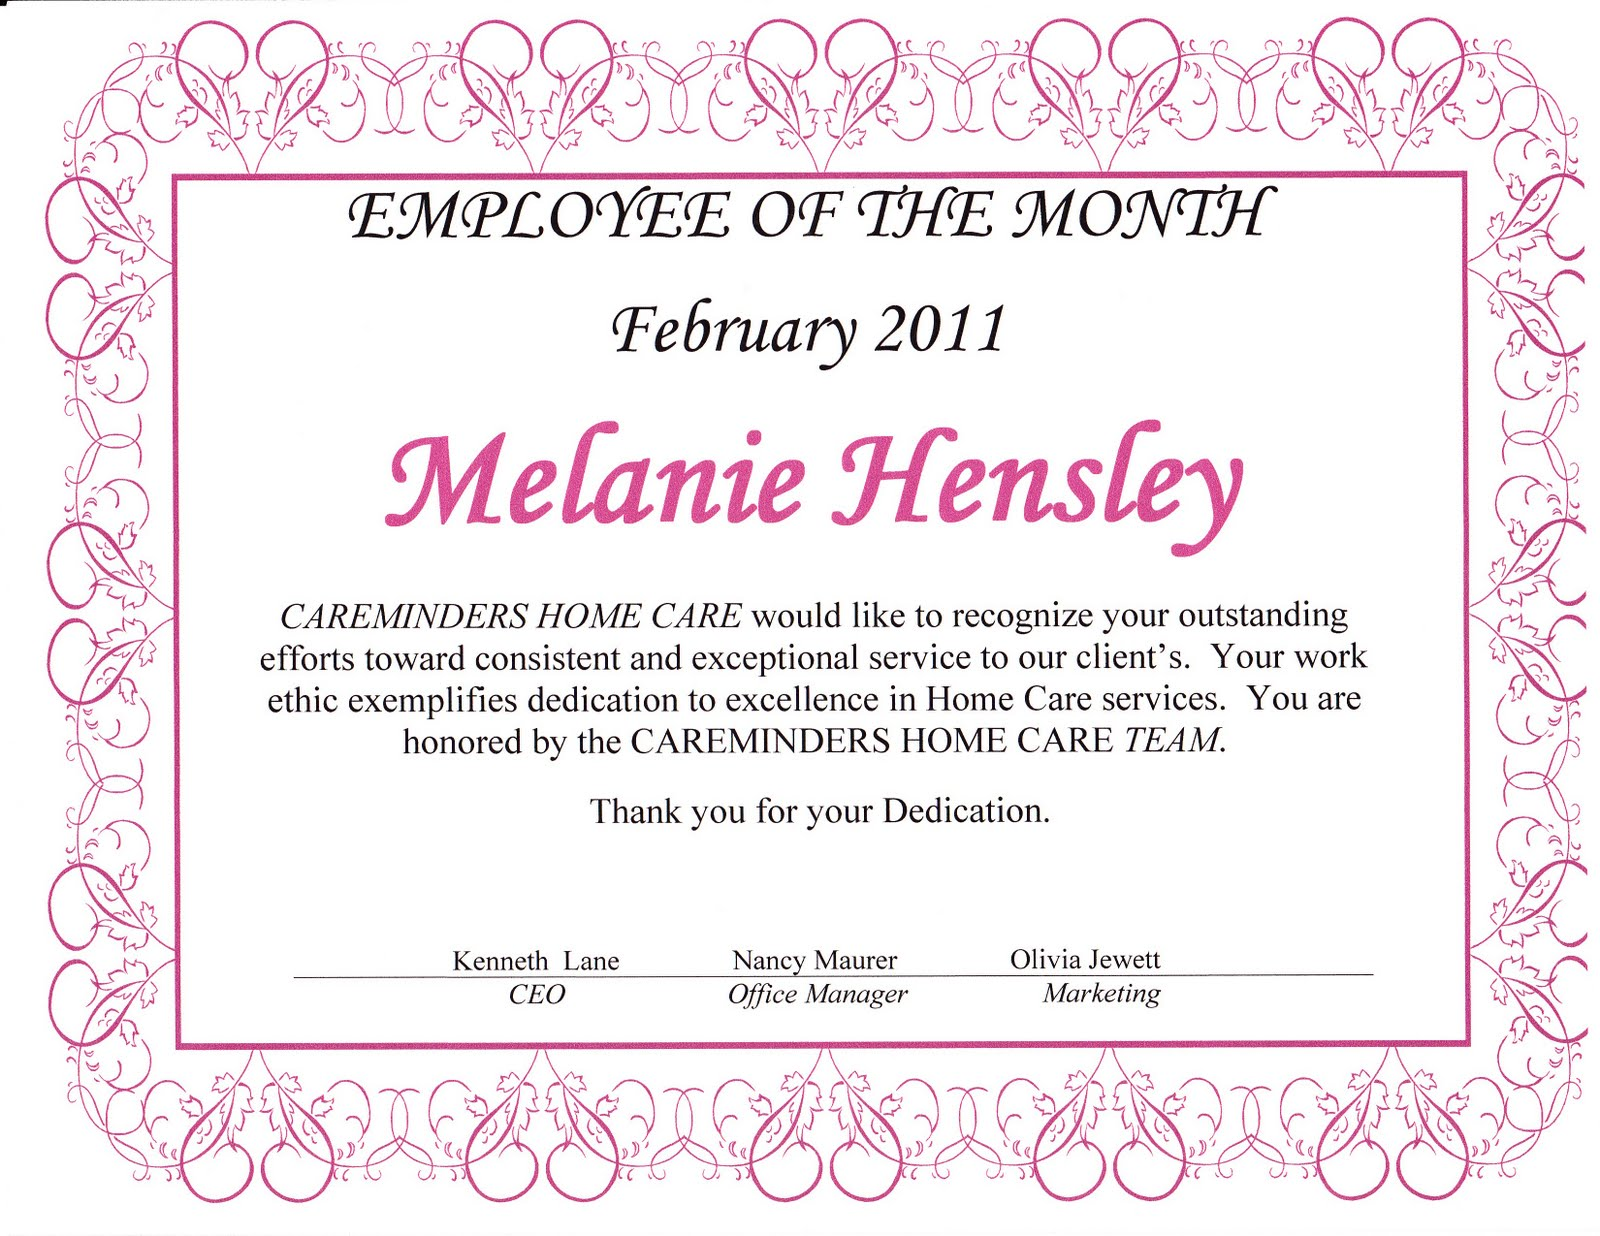 employee of the month certificate template with picture - employee of the month certificate template bing images